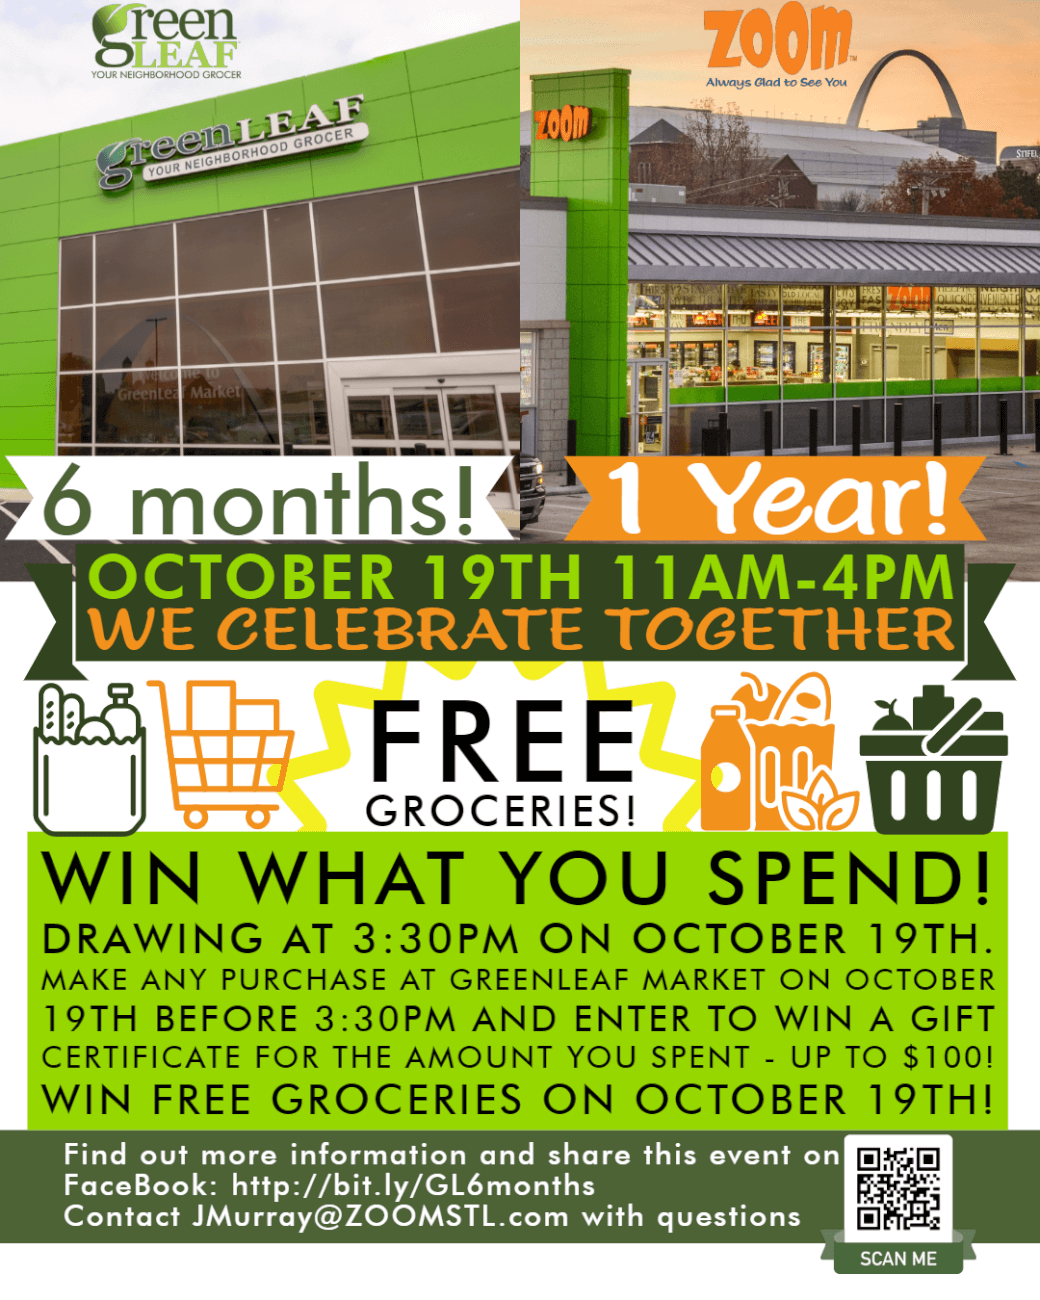 Win free groceries at GreenLeaf Market